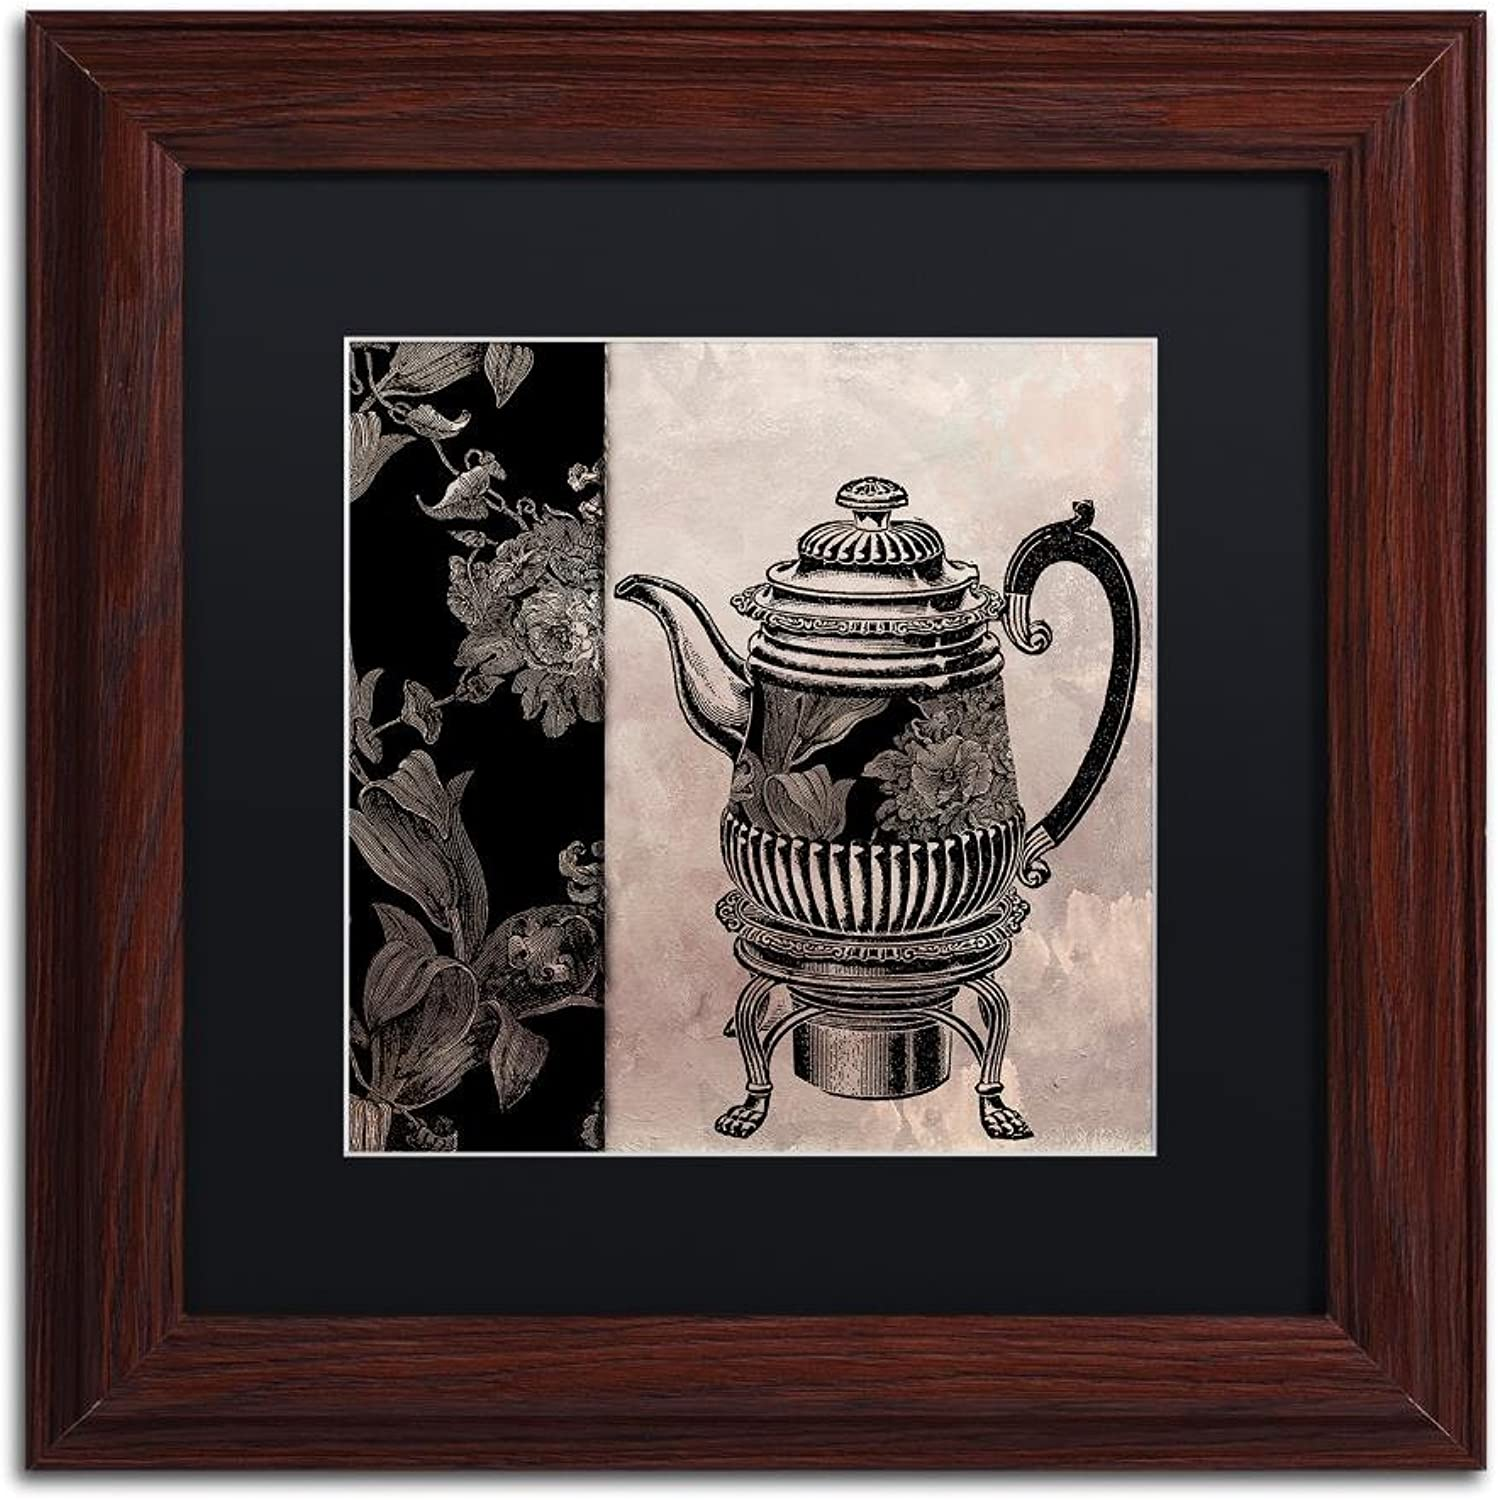 Trademark Fine Art Victorian Table III by color Bakery, Black Matte, Wood Frame 11x11, Wall Art